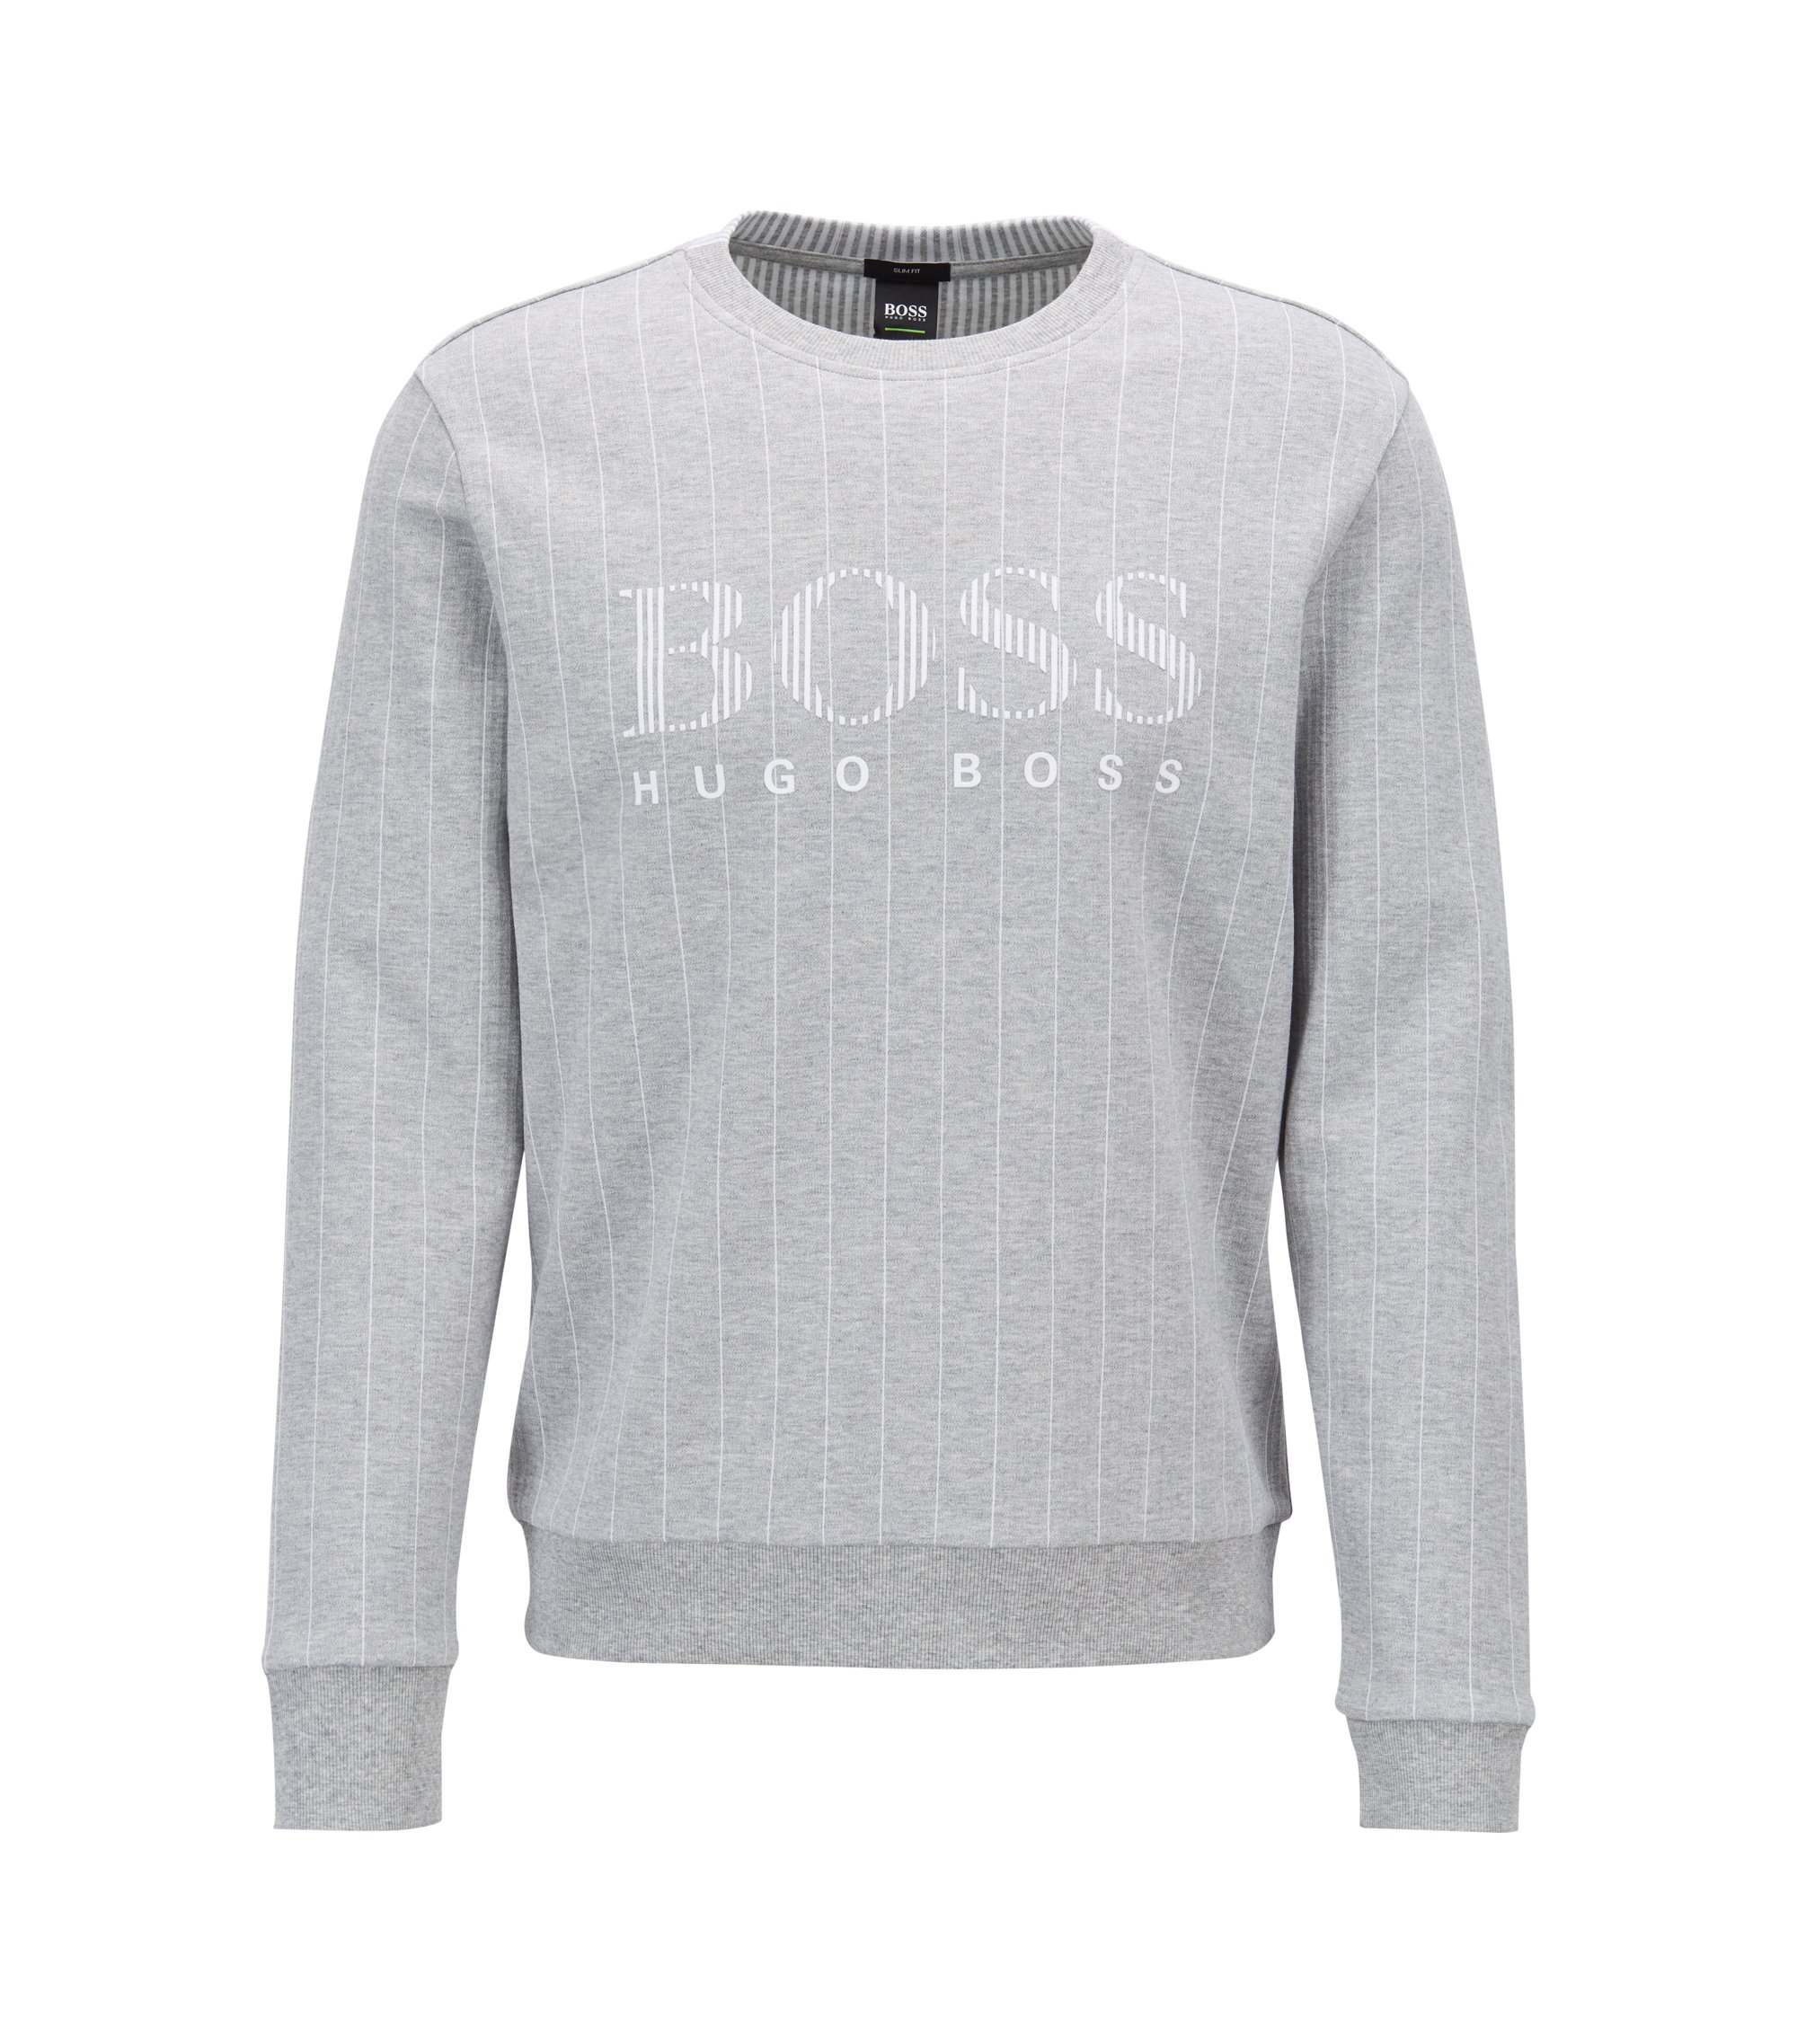 Slim-fit sweatshirt with flock-print logo and pinstripe, Light Grey